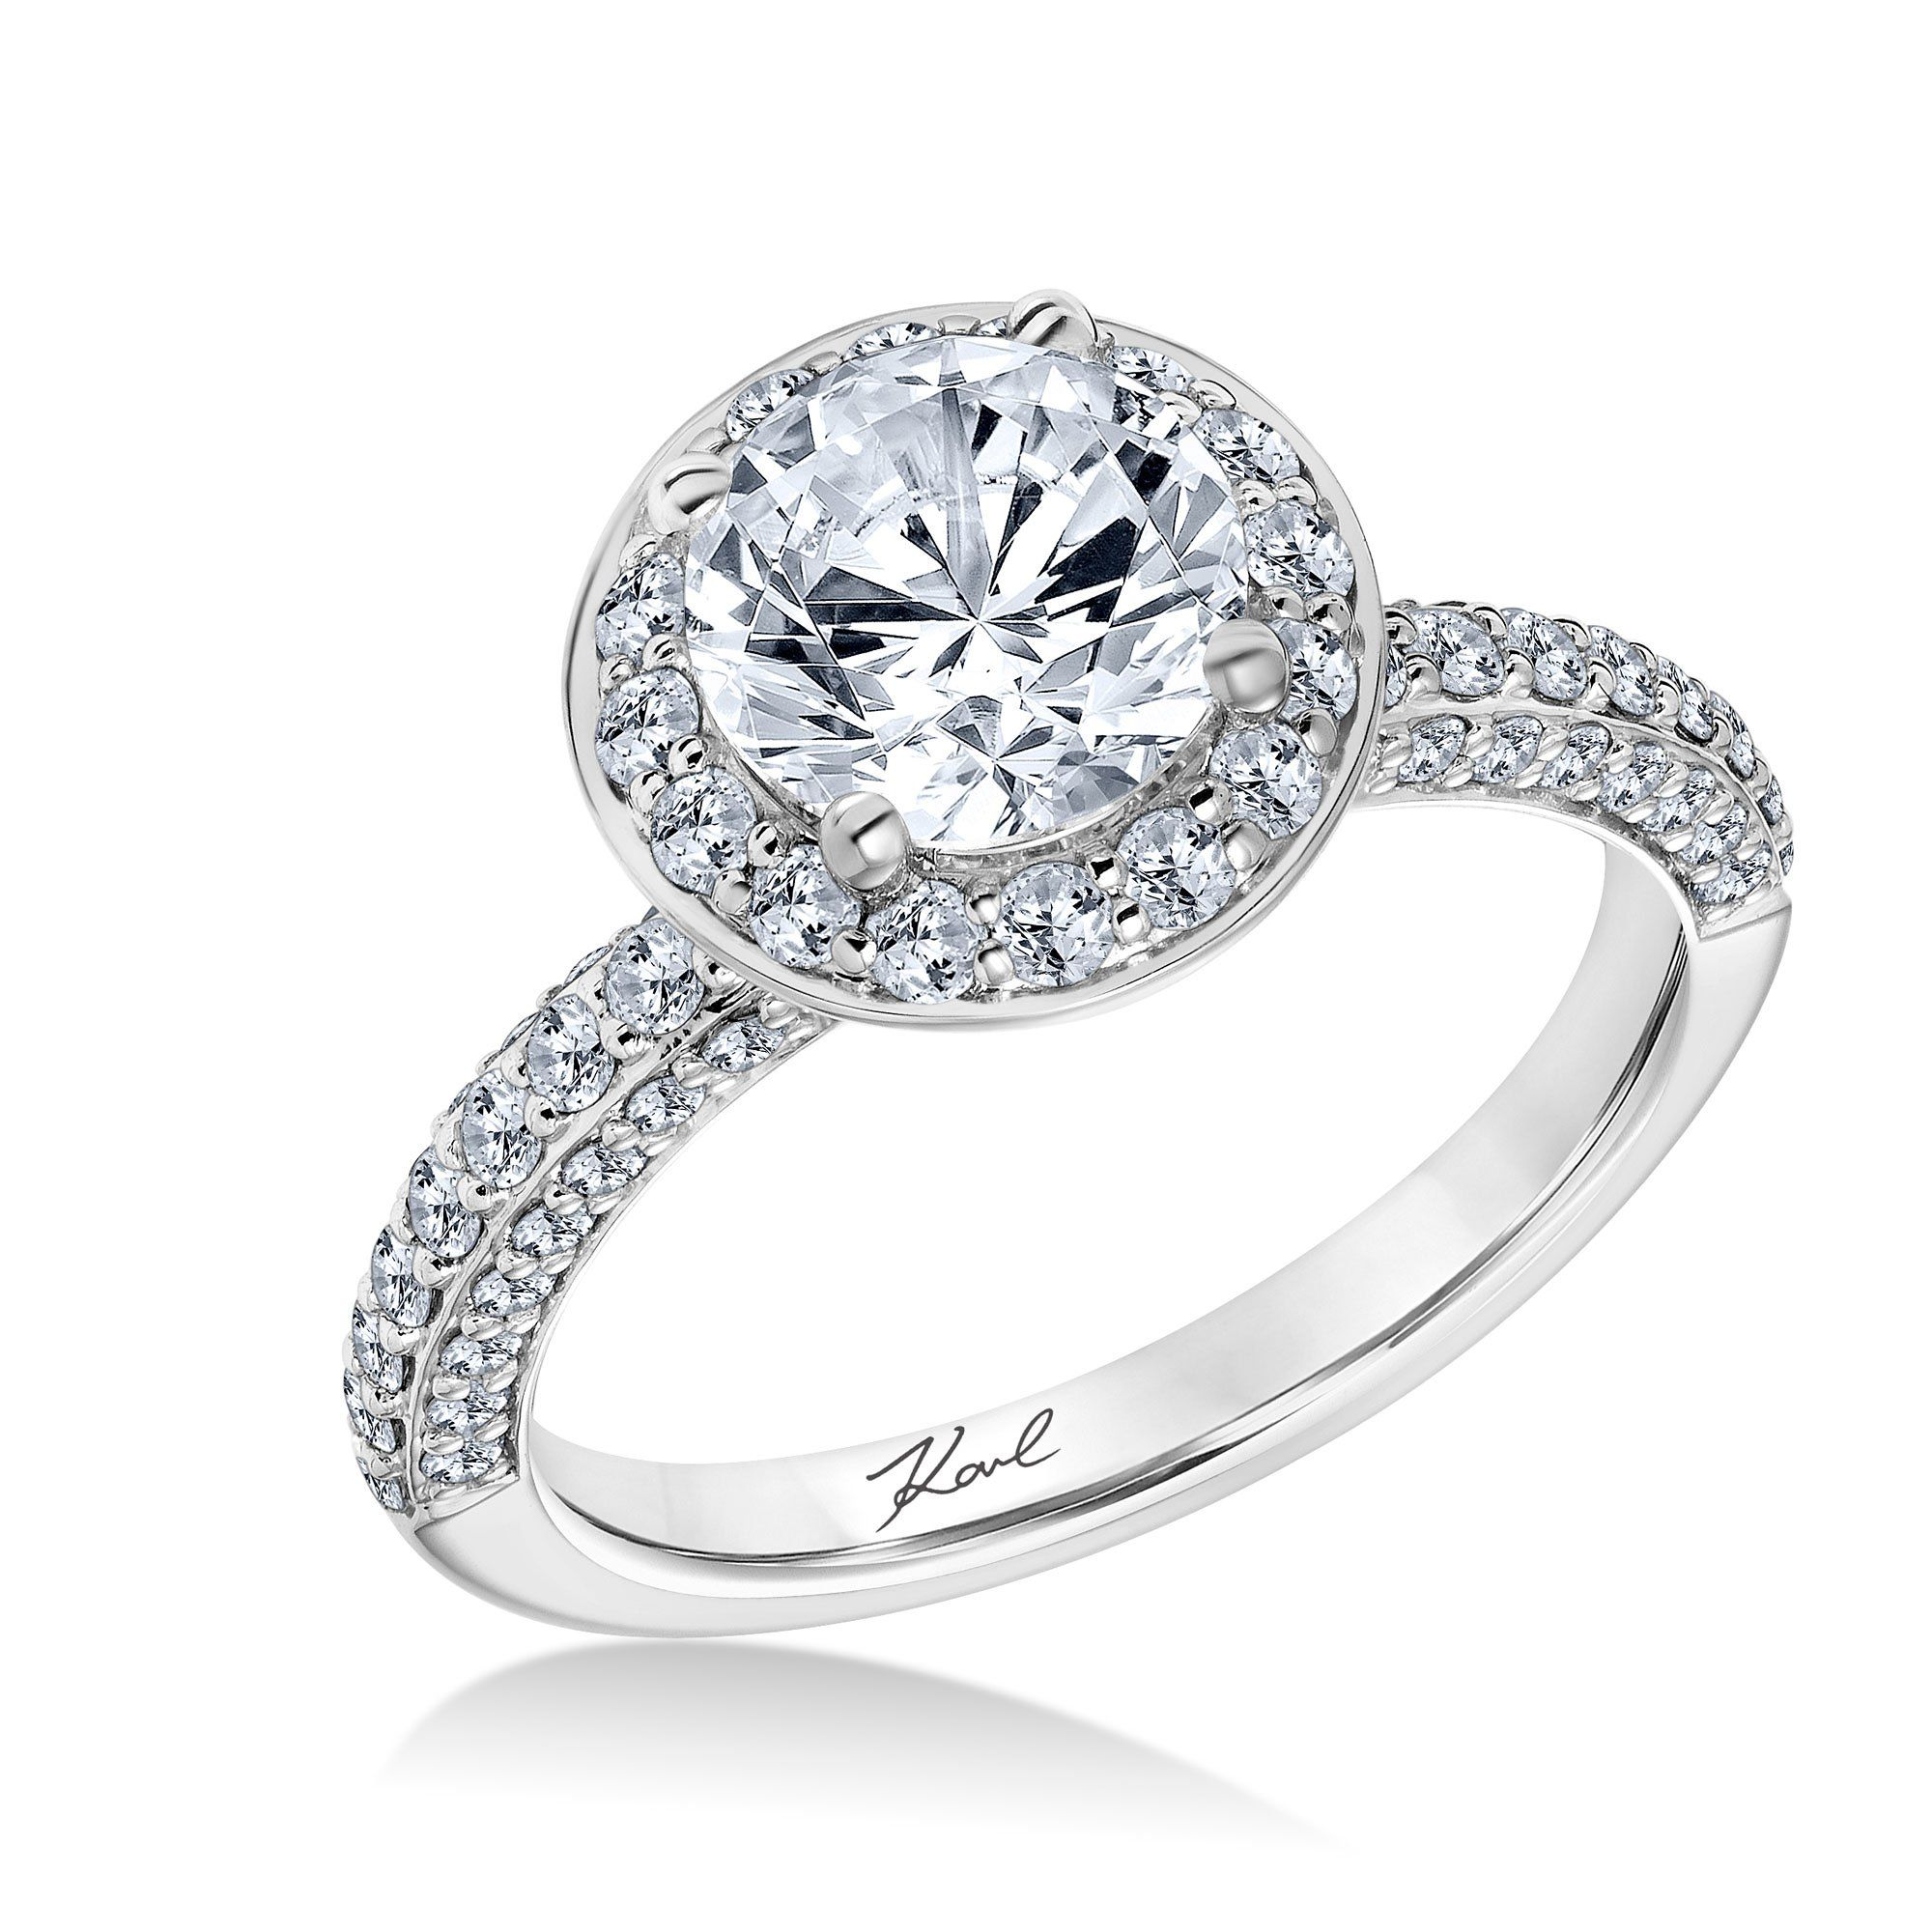 dress products style sparklingjewellery jewellery engagement designer diamond com ring italian designs